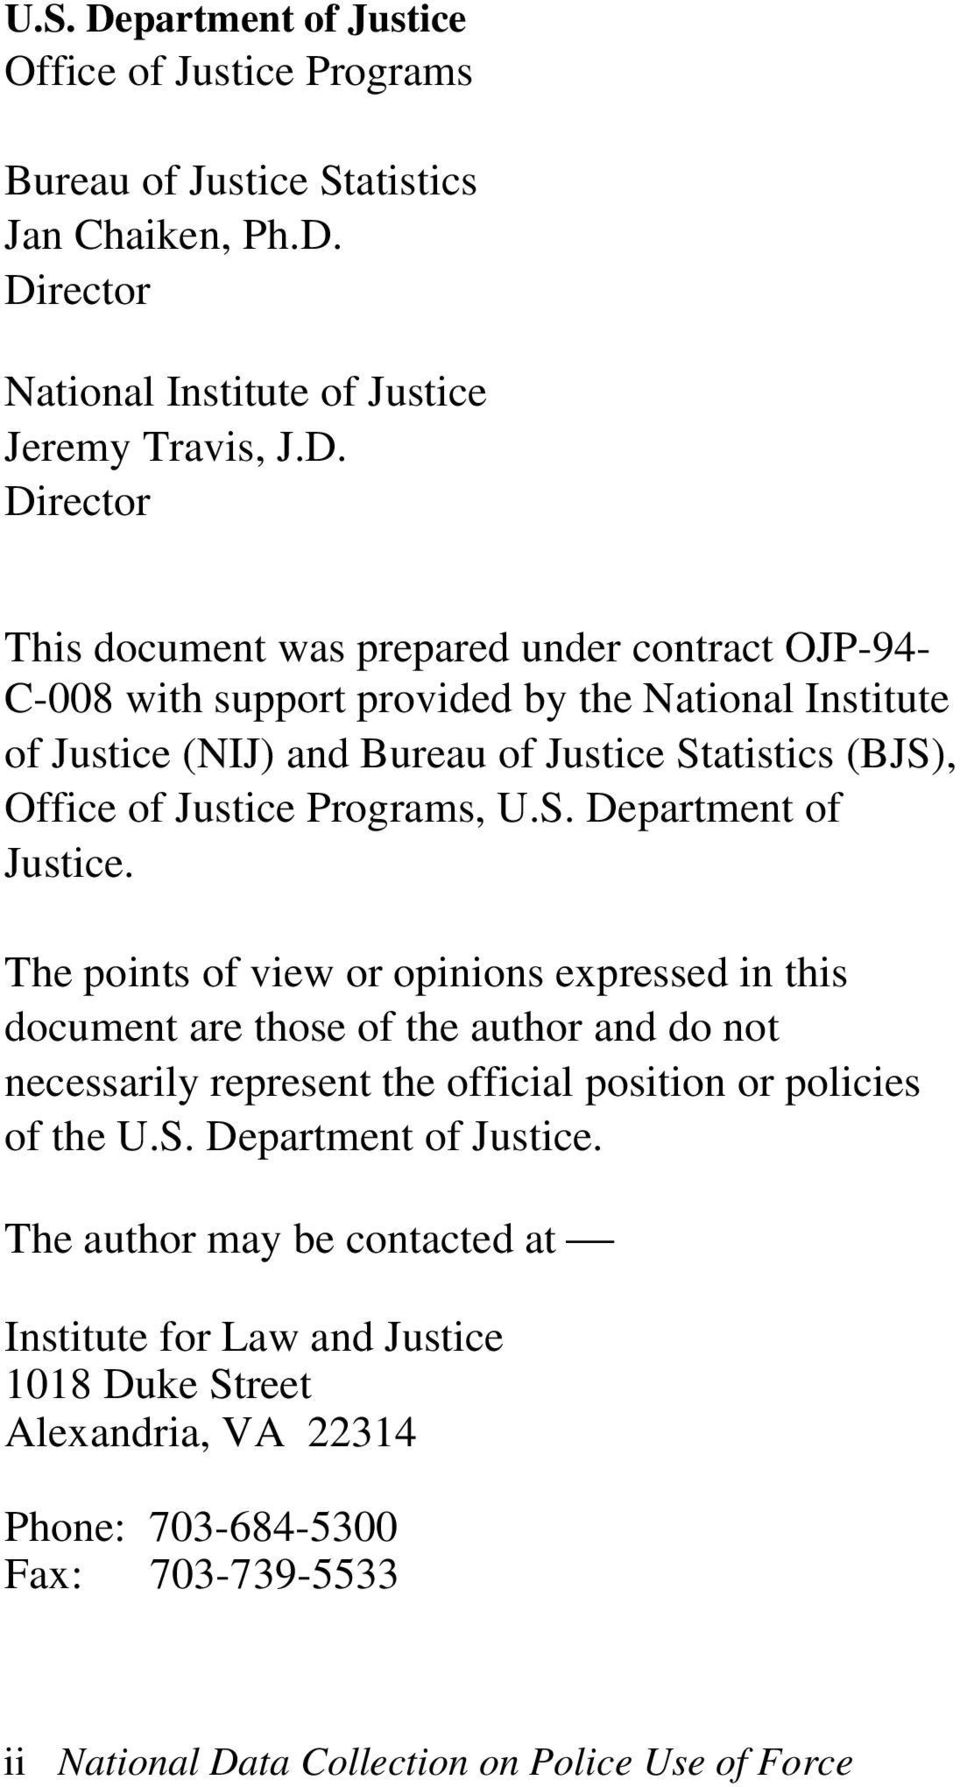 Director National Institute of Justice Jeremy Travis, J.D. Director This document was prepared under contract OJP-94- C-008 with support provided by the National Institute of Justice (NIJ)